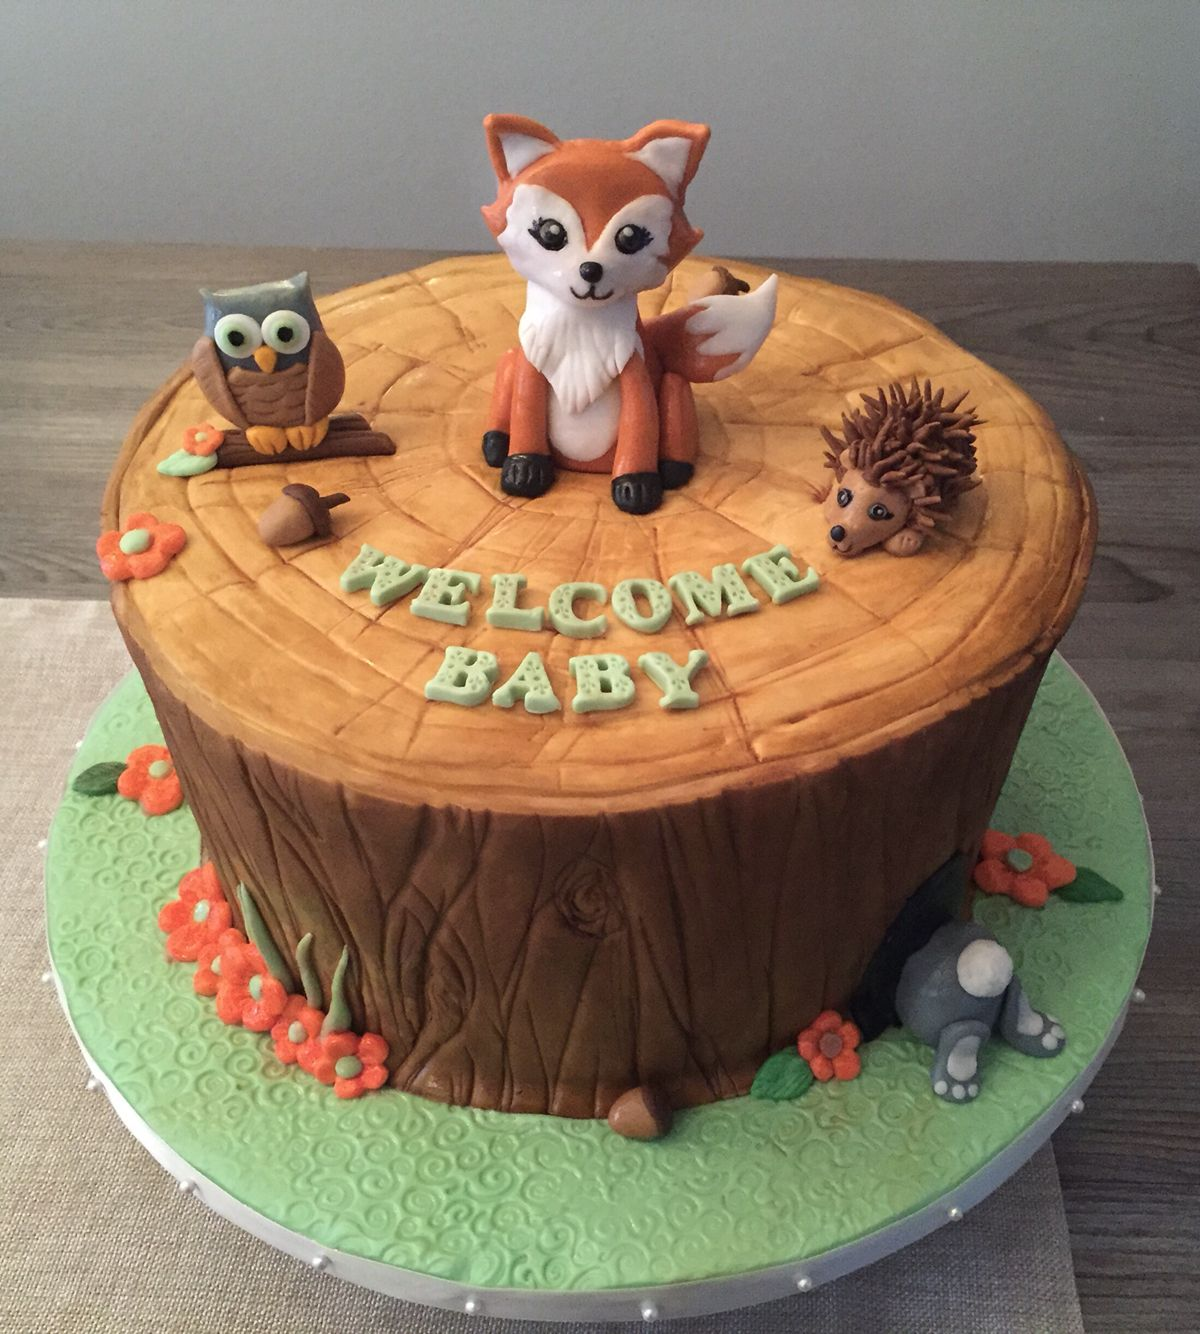 Woodland creature cake- we'd like the cake modeled after ...